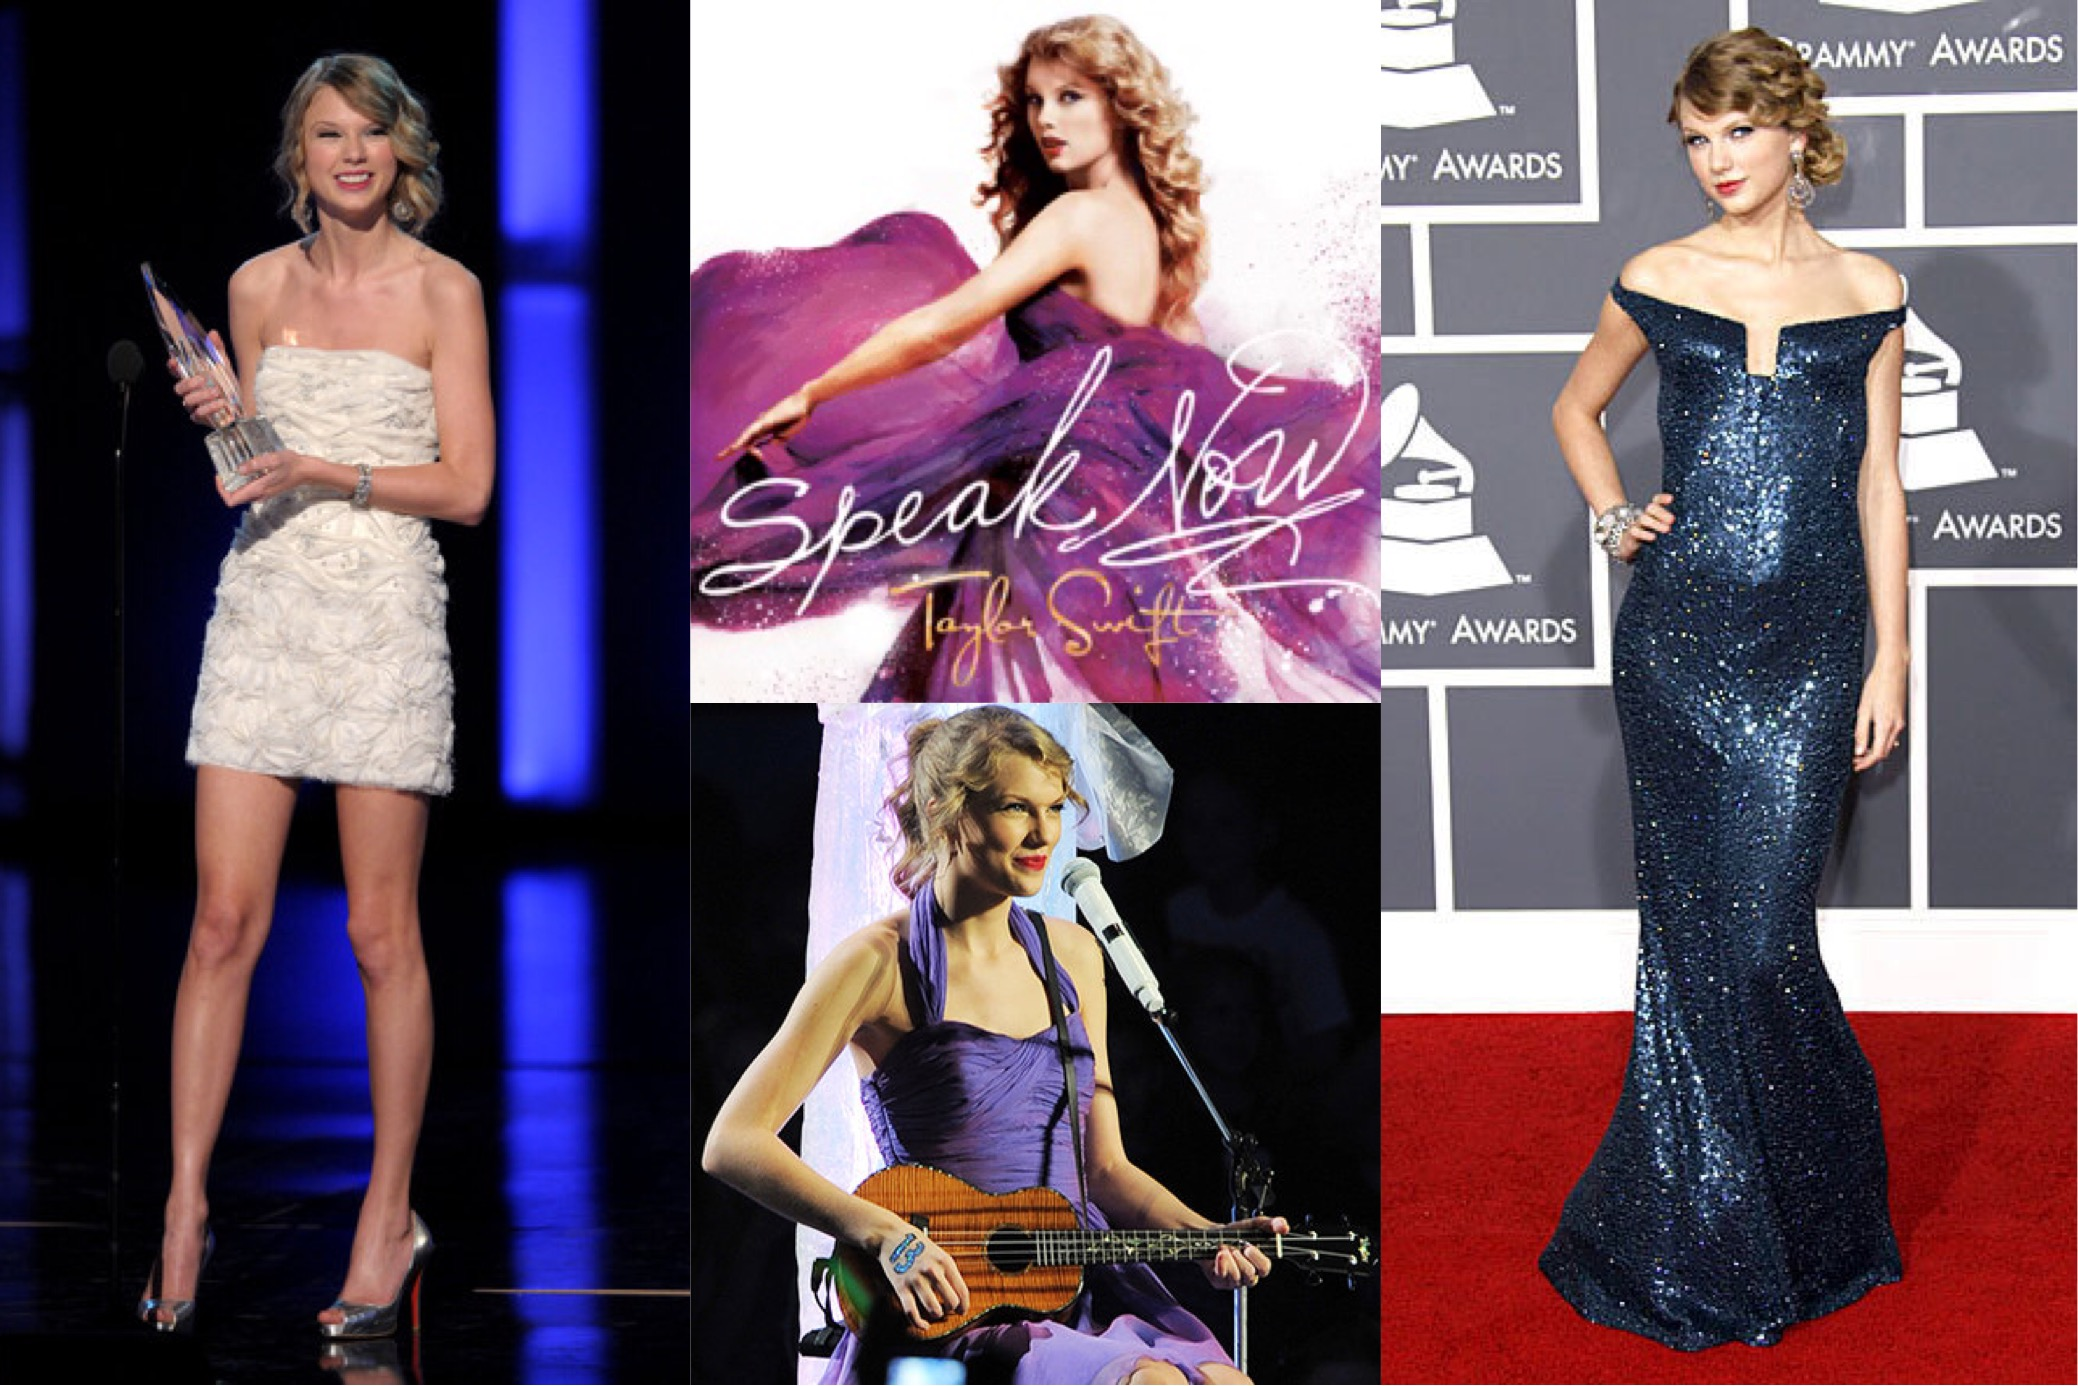 Taylor Swift at the 2010 People's Choice Awards,  Speak Now  (2010) album cover, 2011 Speak Now World Tour concert in New York City, the 2010 Grammy Awards in KaufmanFranco   (Photo: Kevin Winter/Getty Images, Taylor Swift Wiki, Larry Busacca/Getty Images, Getty Images )